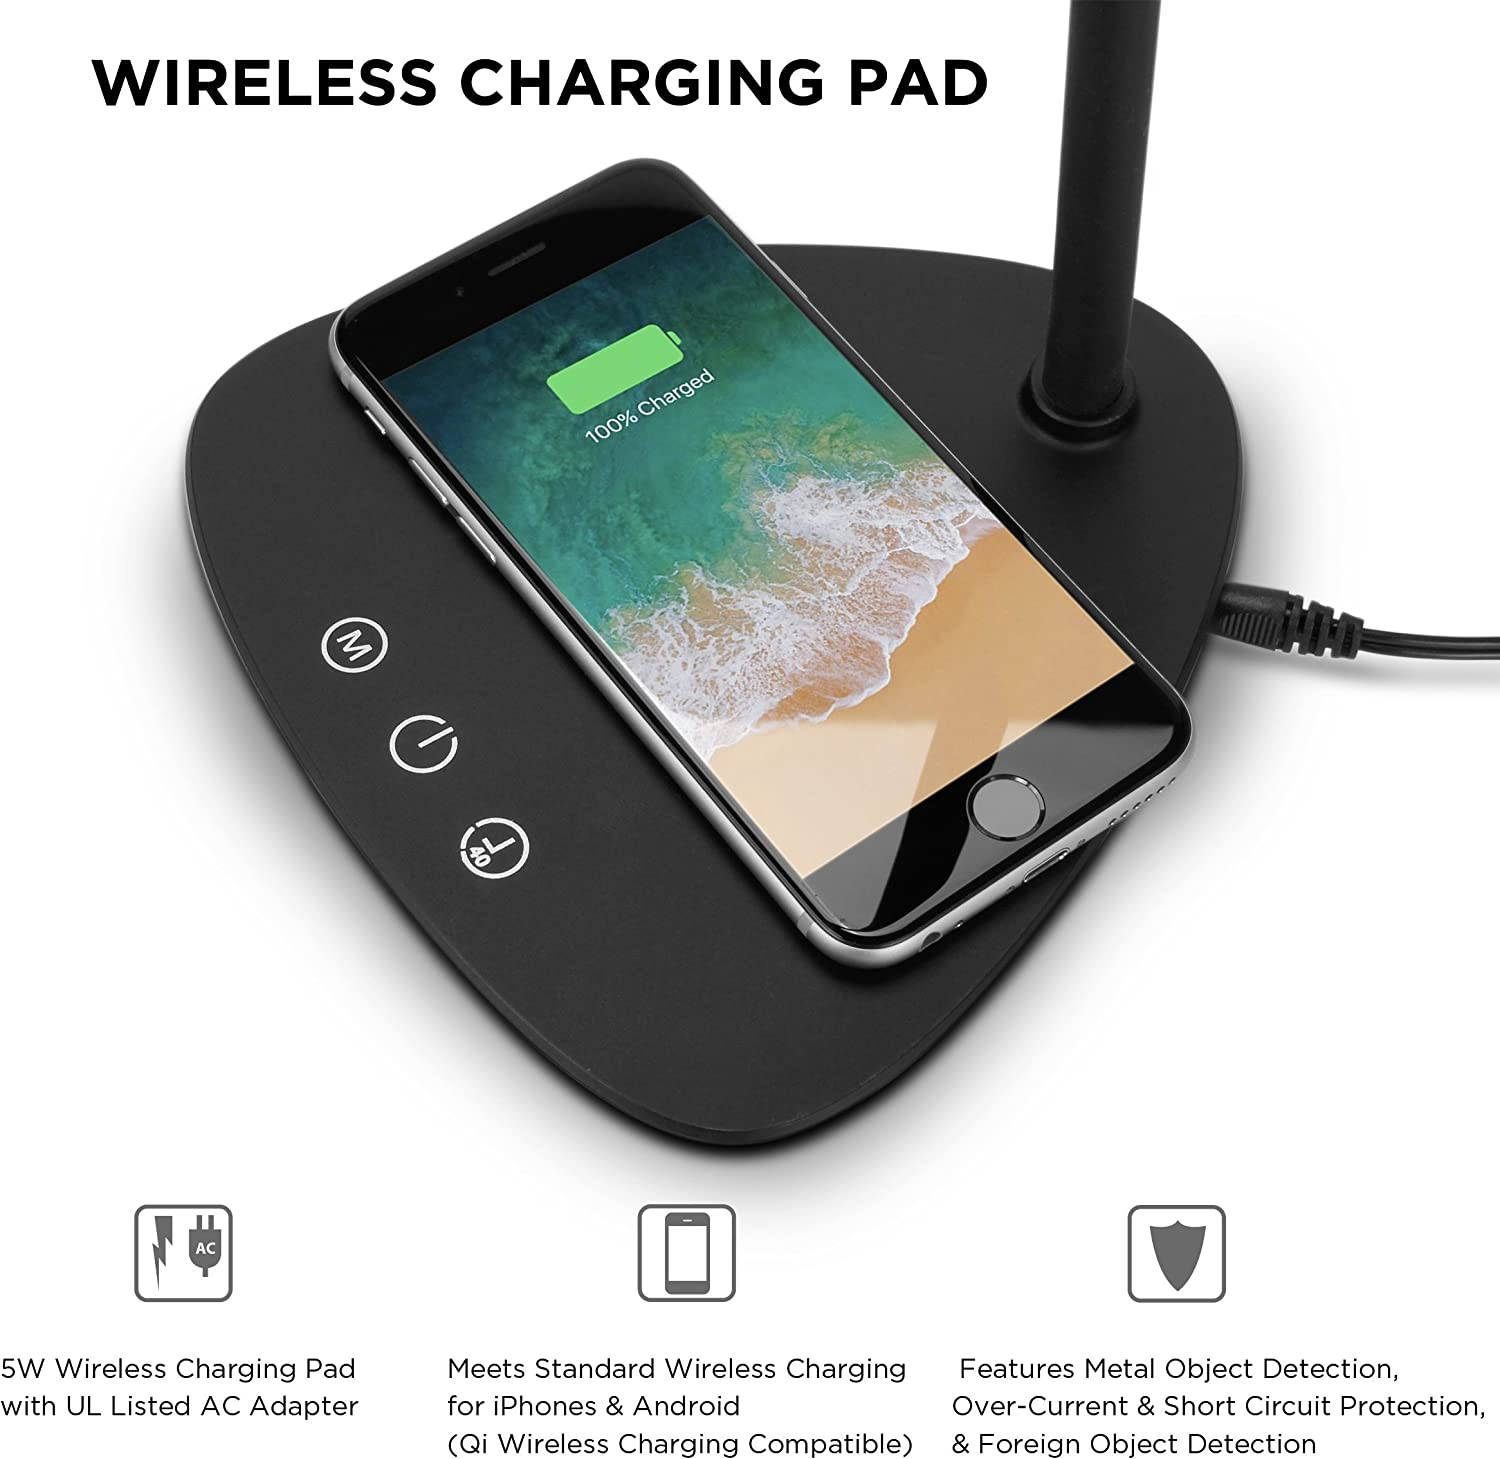 Touch Controls Brightness Slider Charger Compatible with All Qi-Enabled Devices 40 Minute Auto Off Timer REVIVE LED Dimmable Desk Lamp with Wireless Charging Pad 3 Color Temperatures